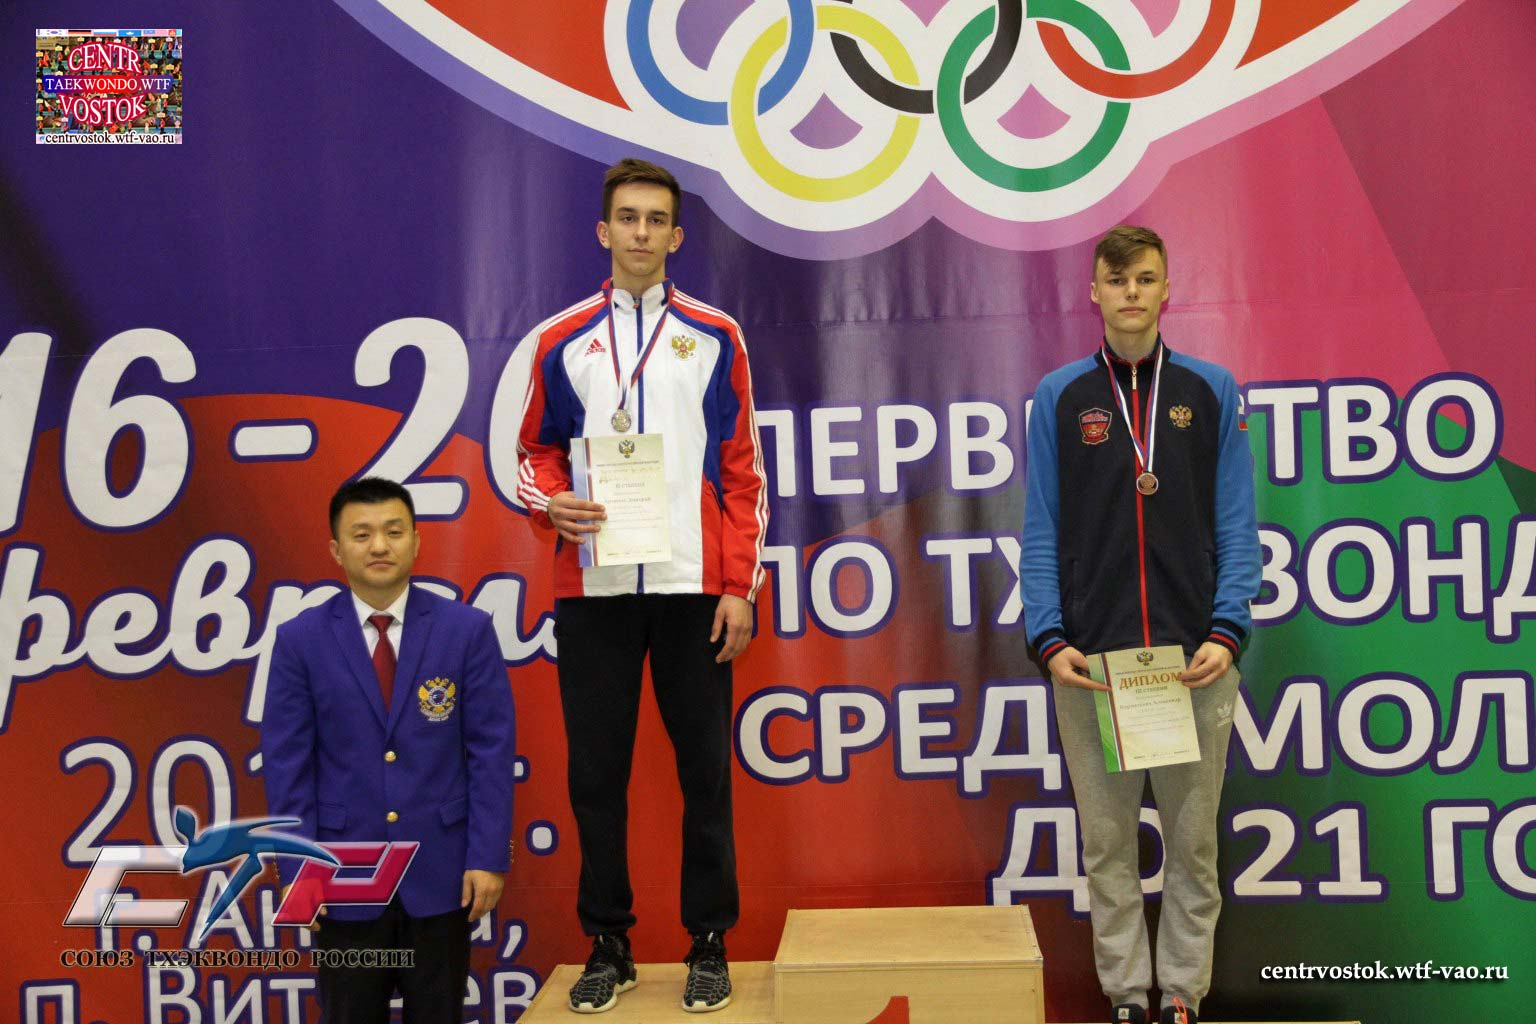 Male_medals_74kg